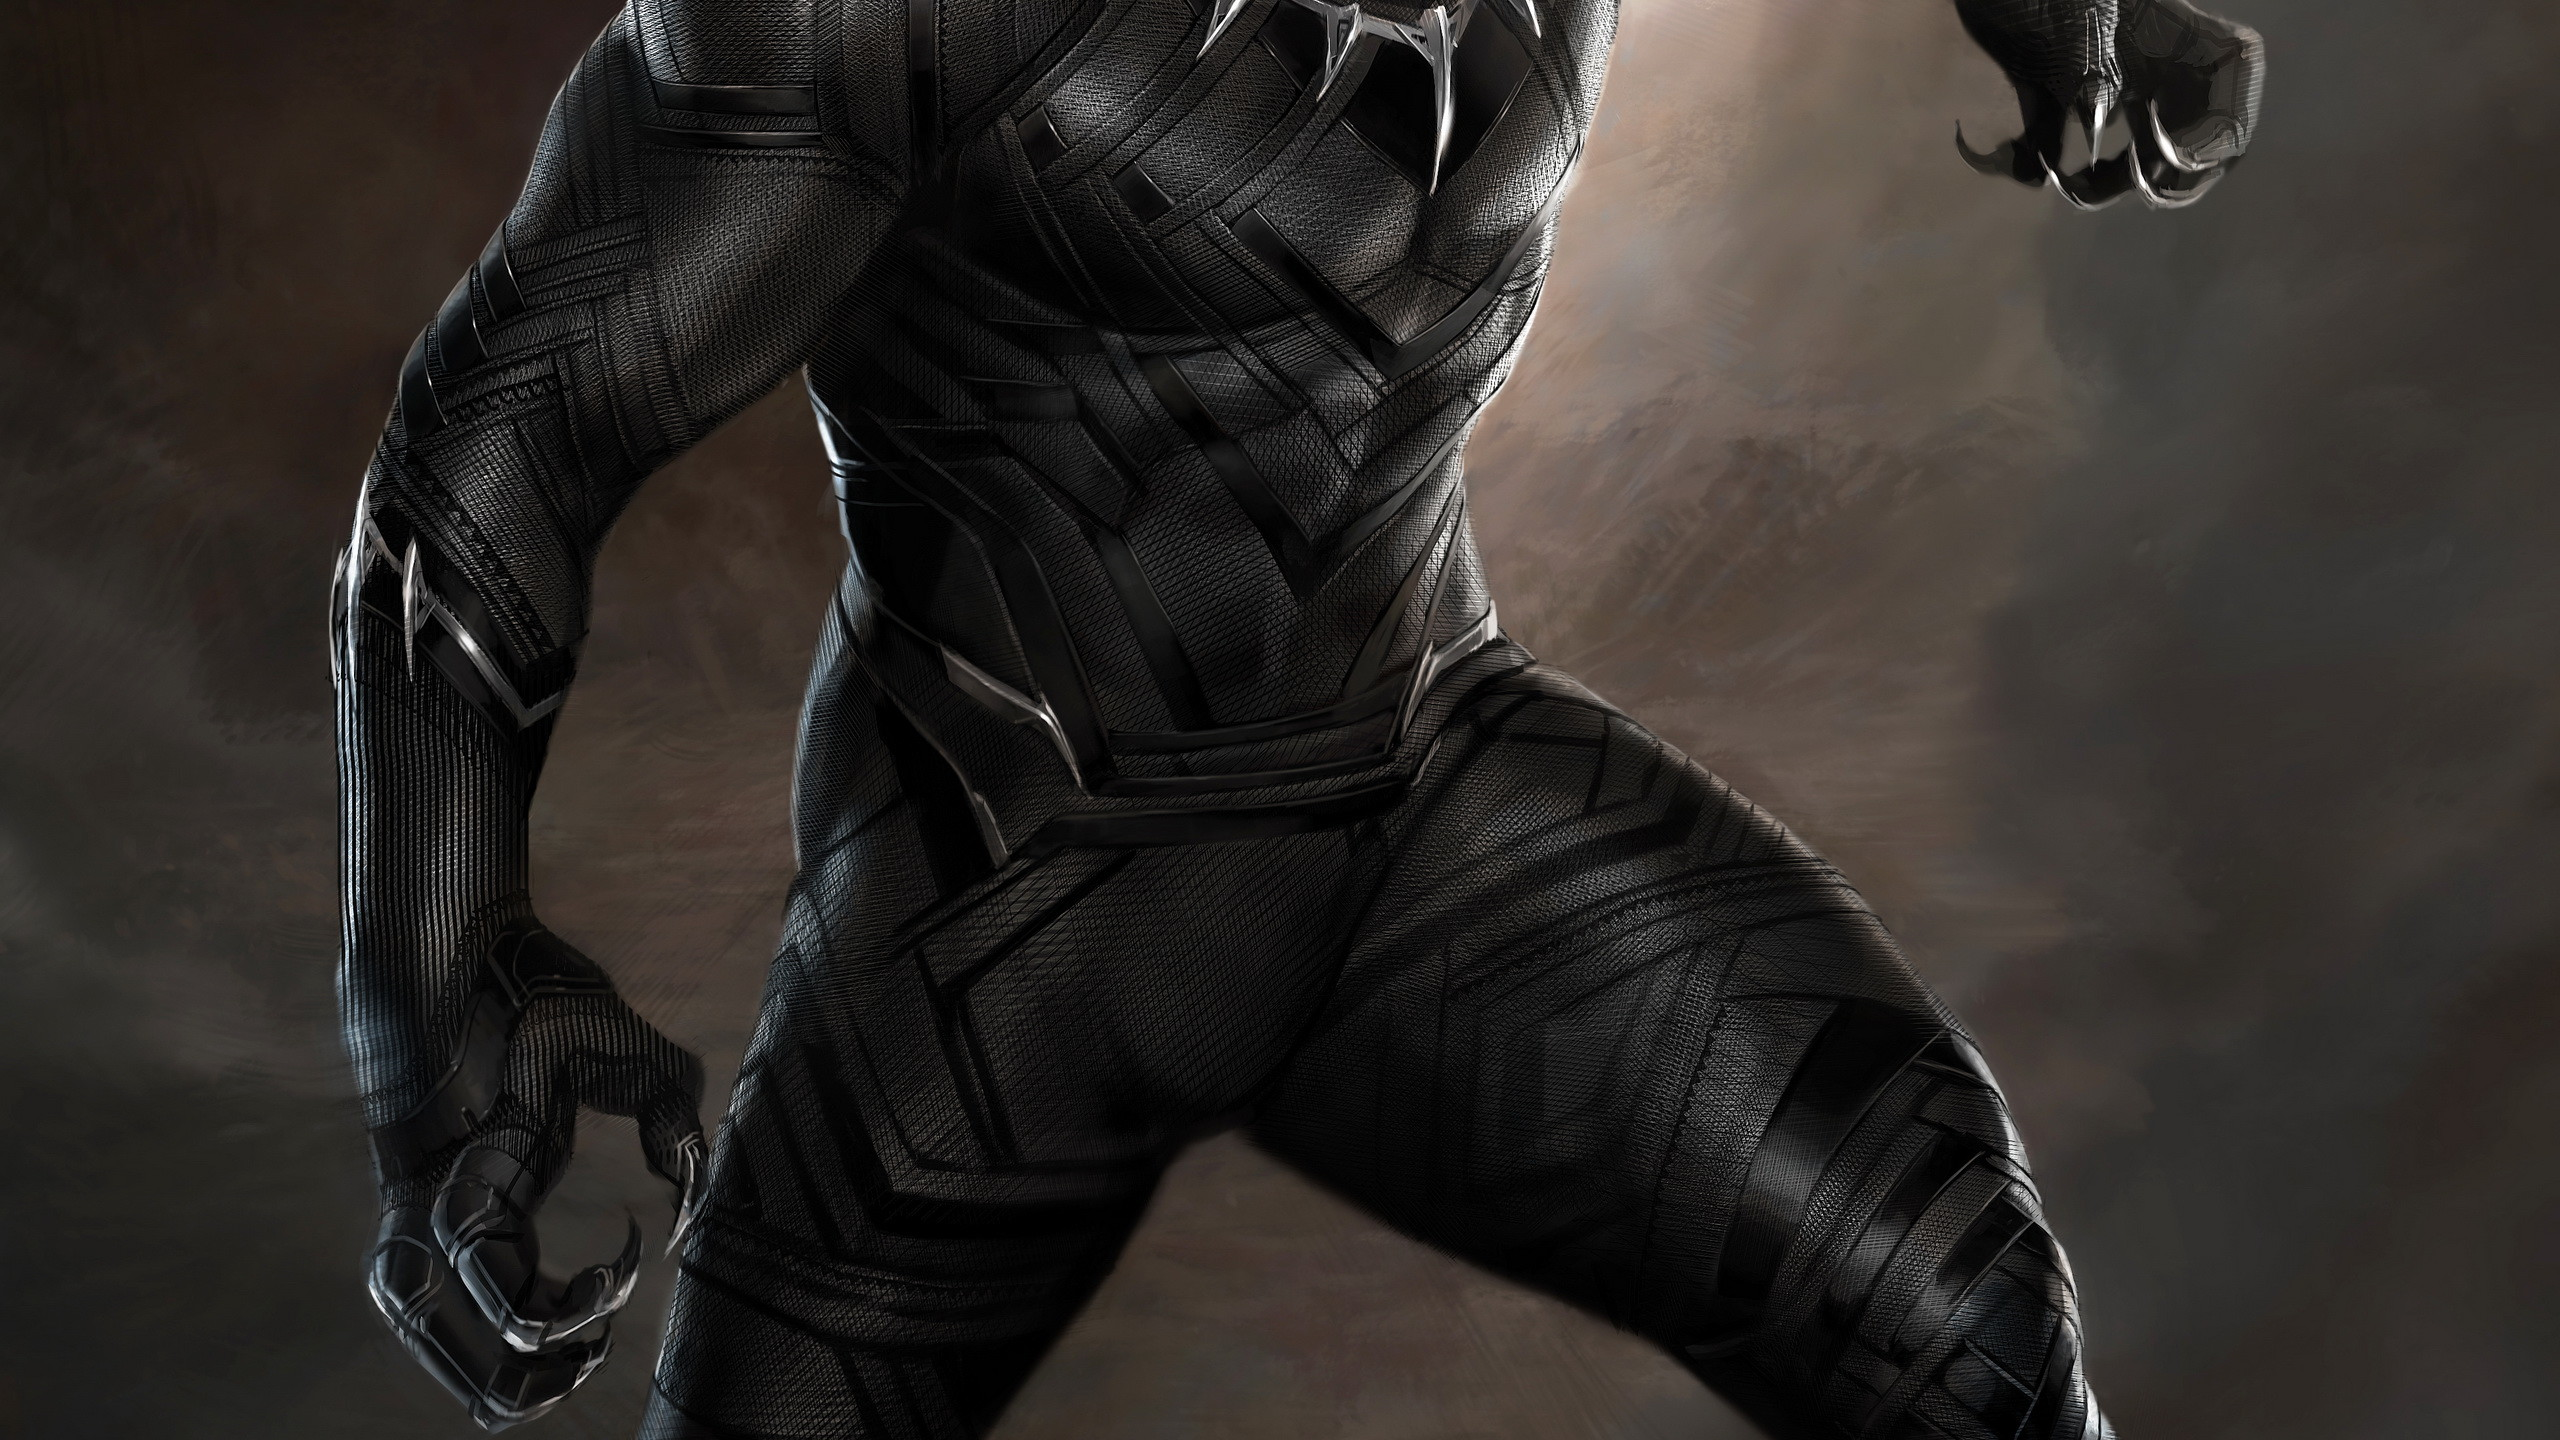 4k Hdr Wallpaper Iphone X Black Panther Marvel Wallpapers 183 ①